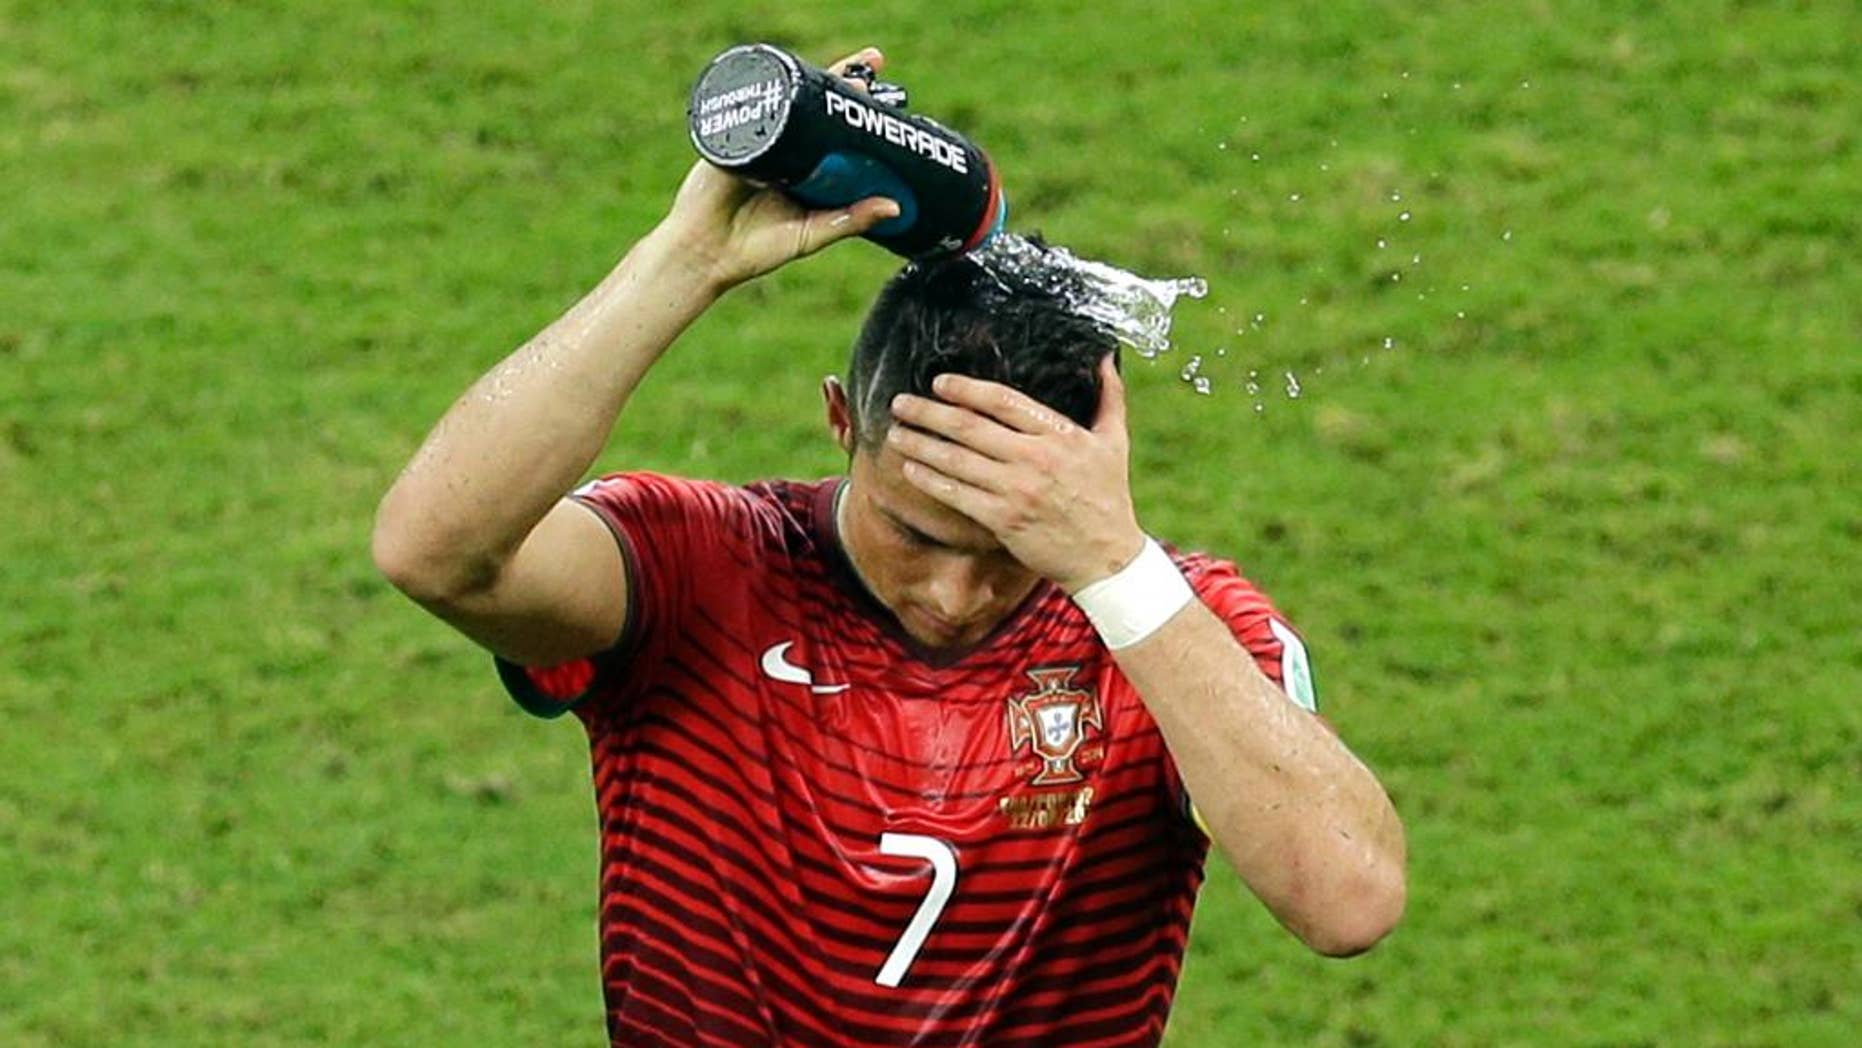 Portugal's Cristiano Ronaldo pours water over his head during the group G World Cup soccer match between the USA and Portugal at the Arena da Amazonia in Manaus, Brazil, Sunday, June 22, 2014. (AP Photo/Themba Hadebe)